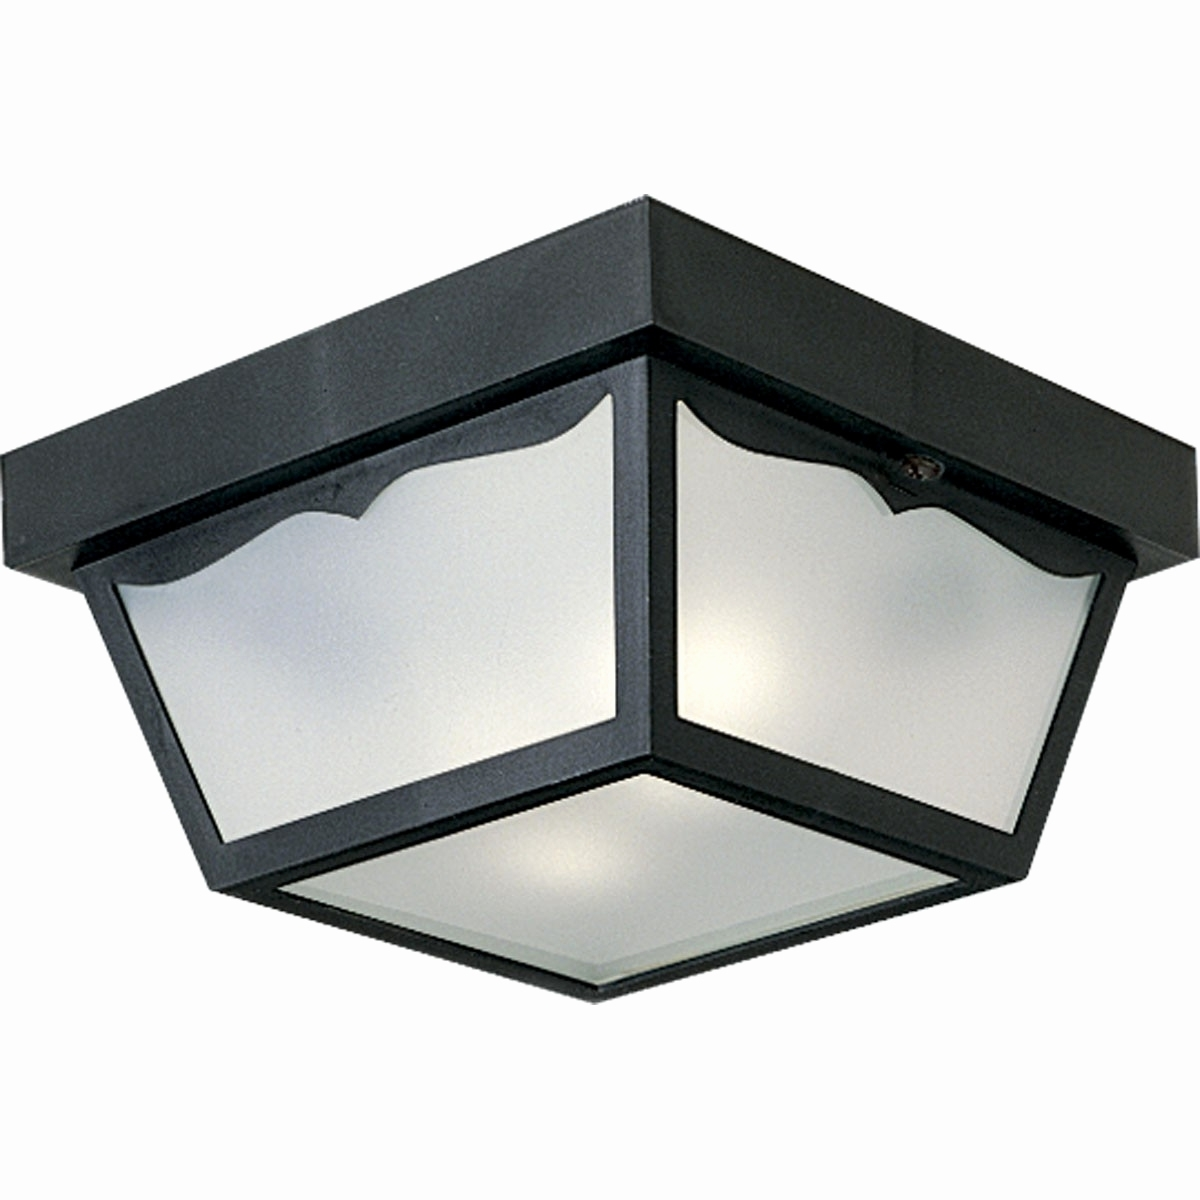 Round Black Finish Motion Sensor Outdoor Ceiling Light | Best Home With Round Outdoor Ceiling Lights (#12 of 15)